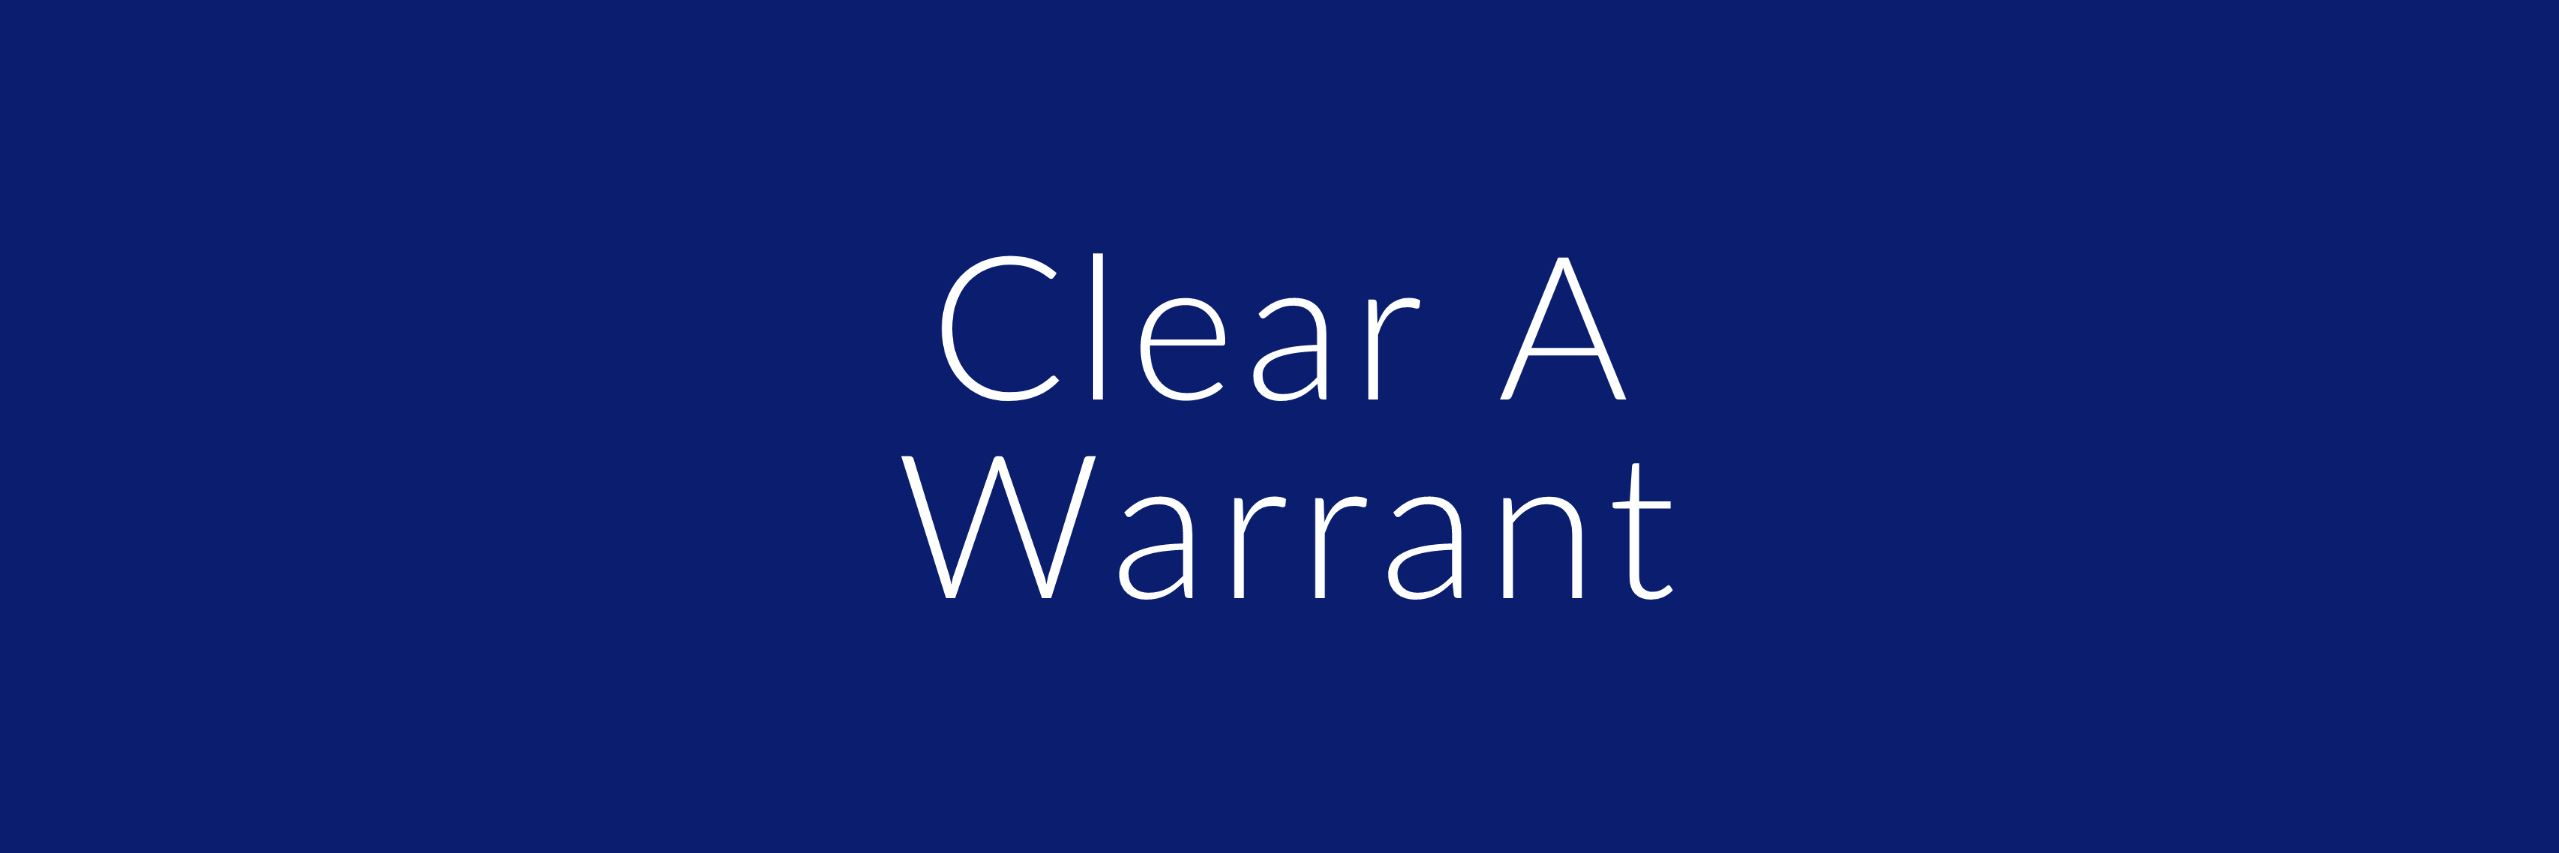 clear a warrant button